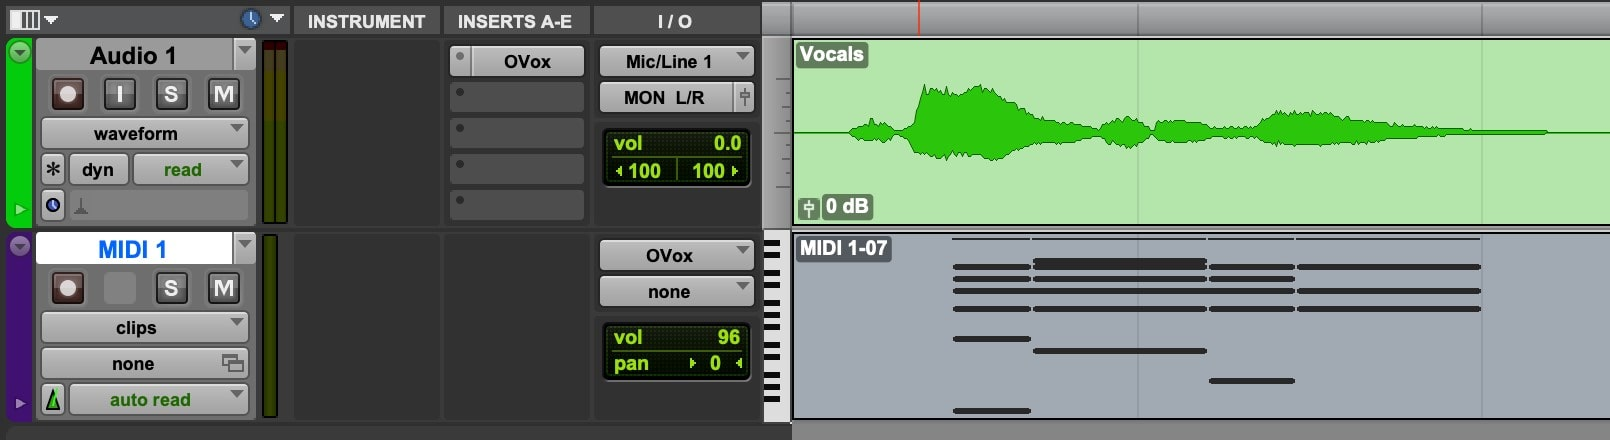 Record arm the MIDI track, and record while playing audio through the audio track.